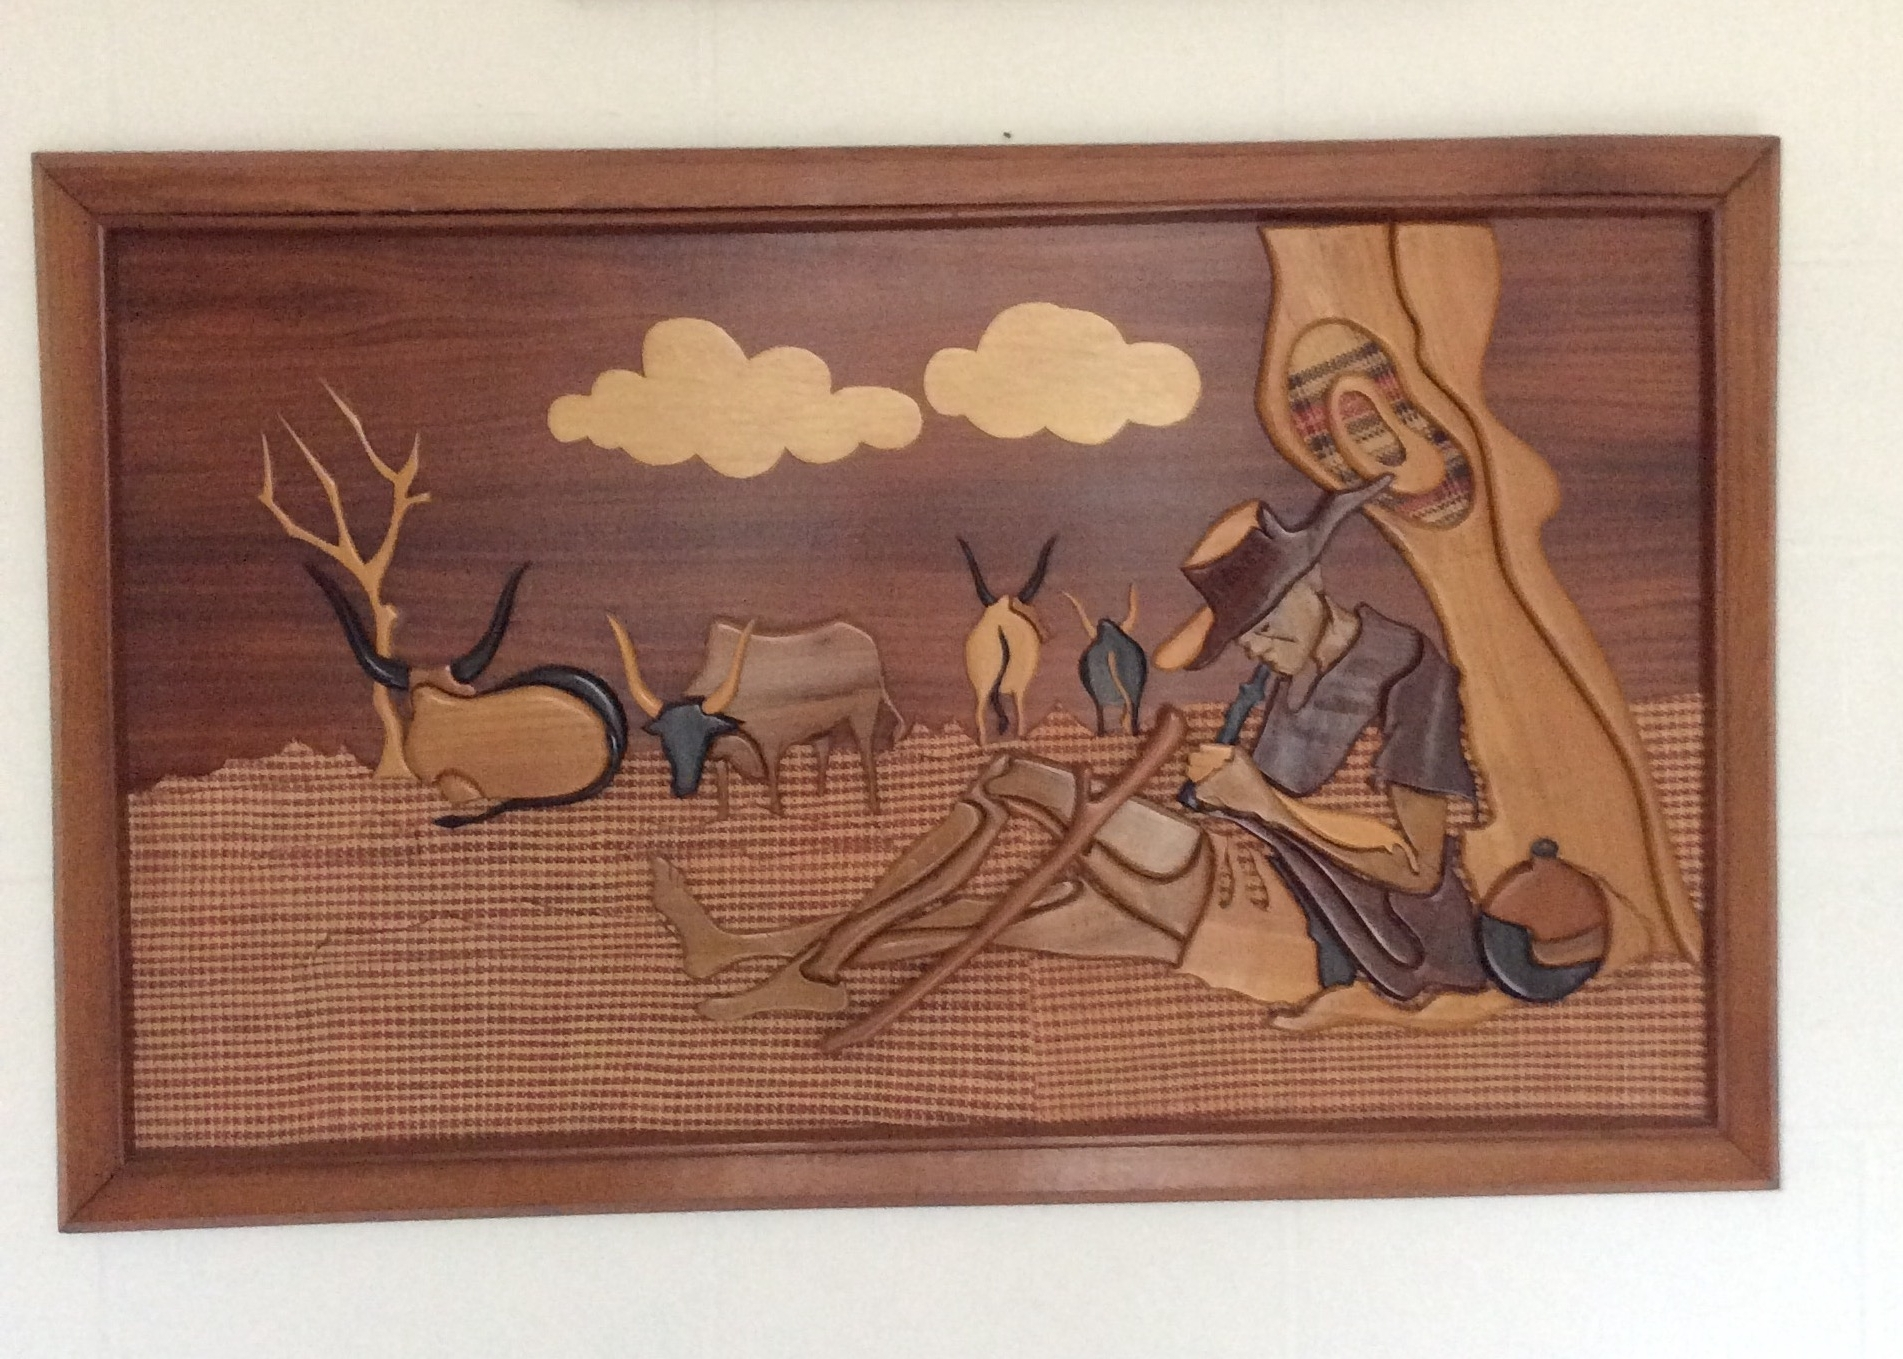 African Wall Art With Newest Wooden African Wall Art – Kazeem The Tomb Raider (View 7 of 15)